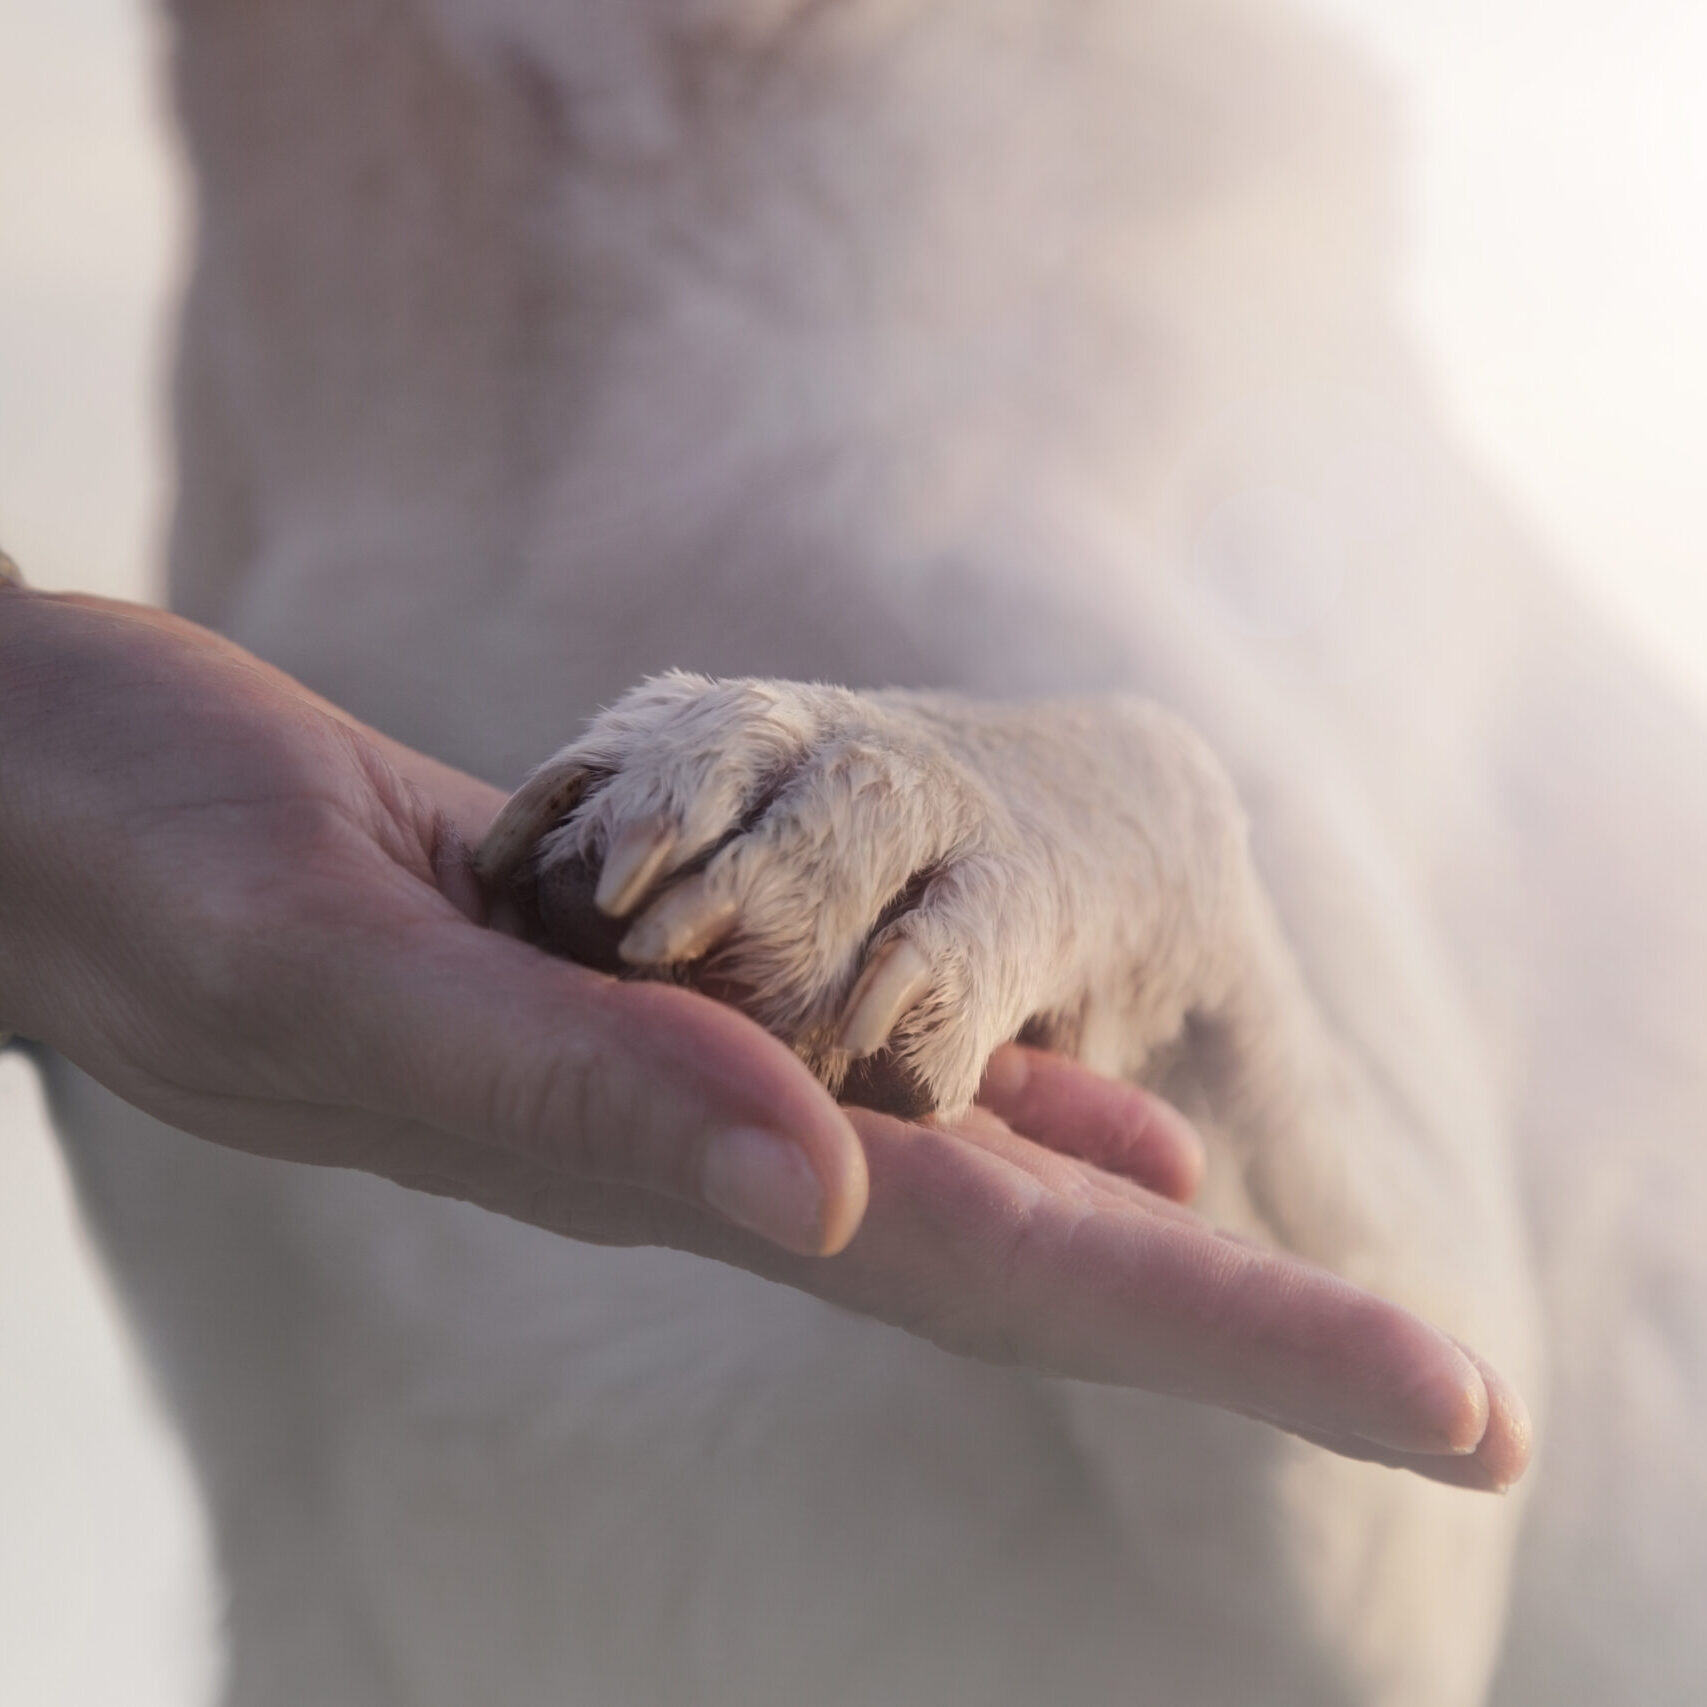 contact between dog paw and human hand, gesture of affection